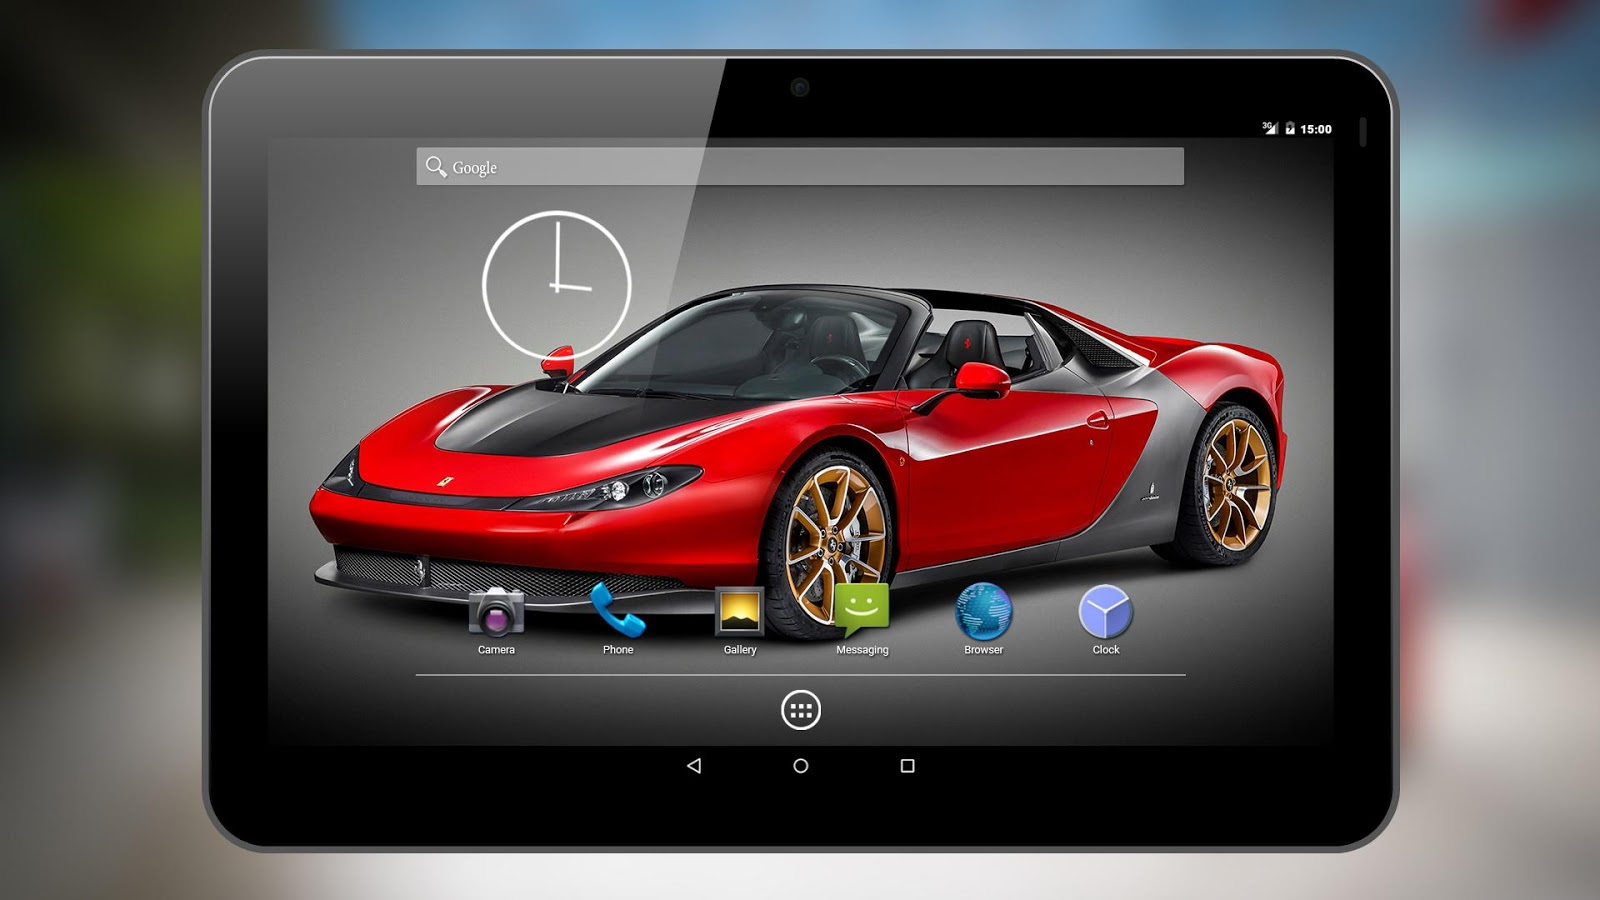 Car Wallpapers Ferrari Android Apps On Google Play